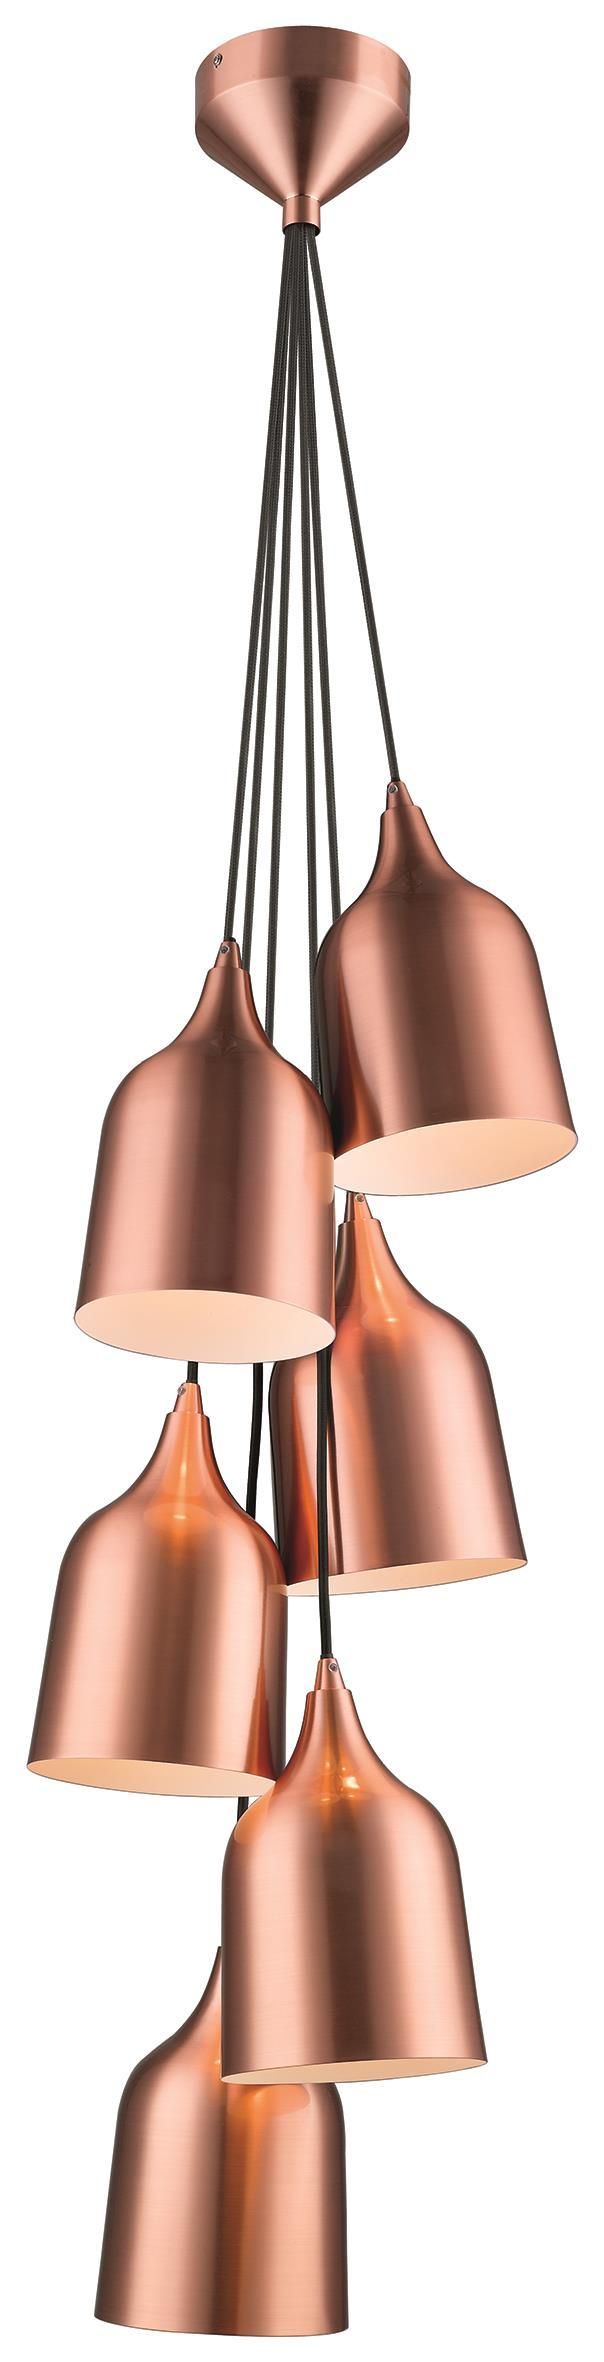 SND Lighting SND166 Craft 6 Light Multi Light Pendant Copper - SND Electrical Ltd